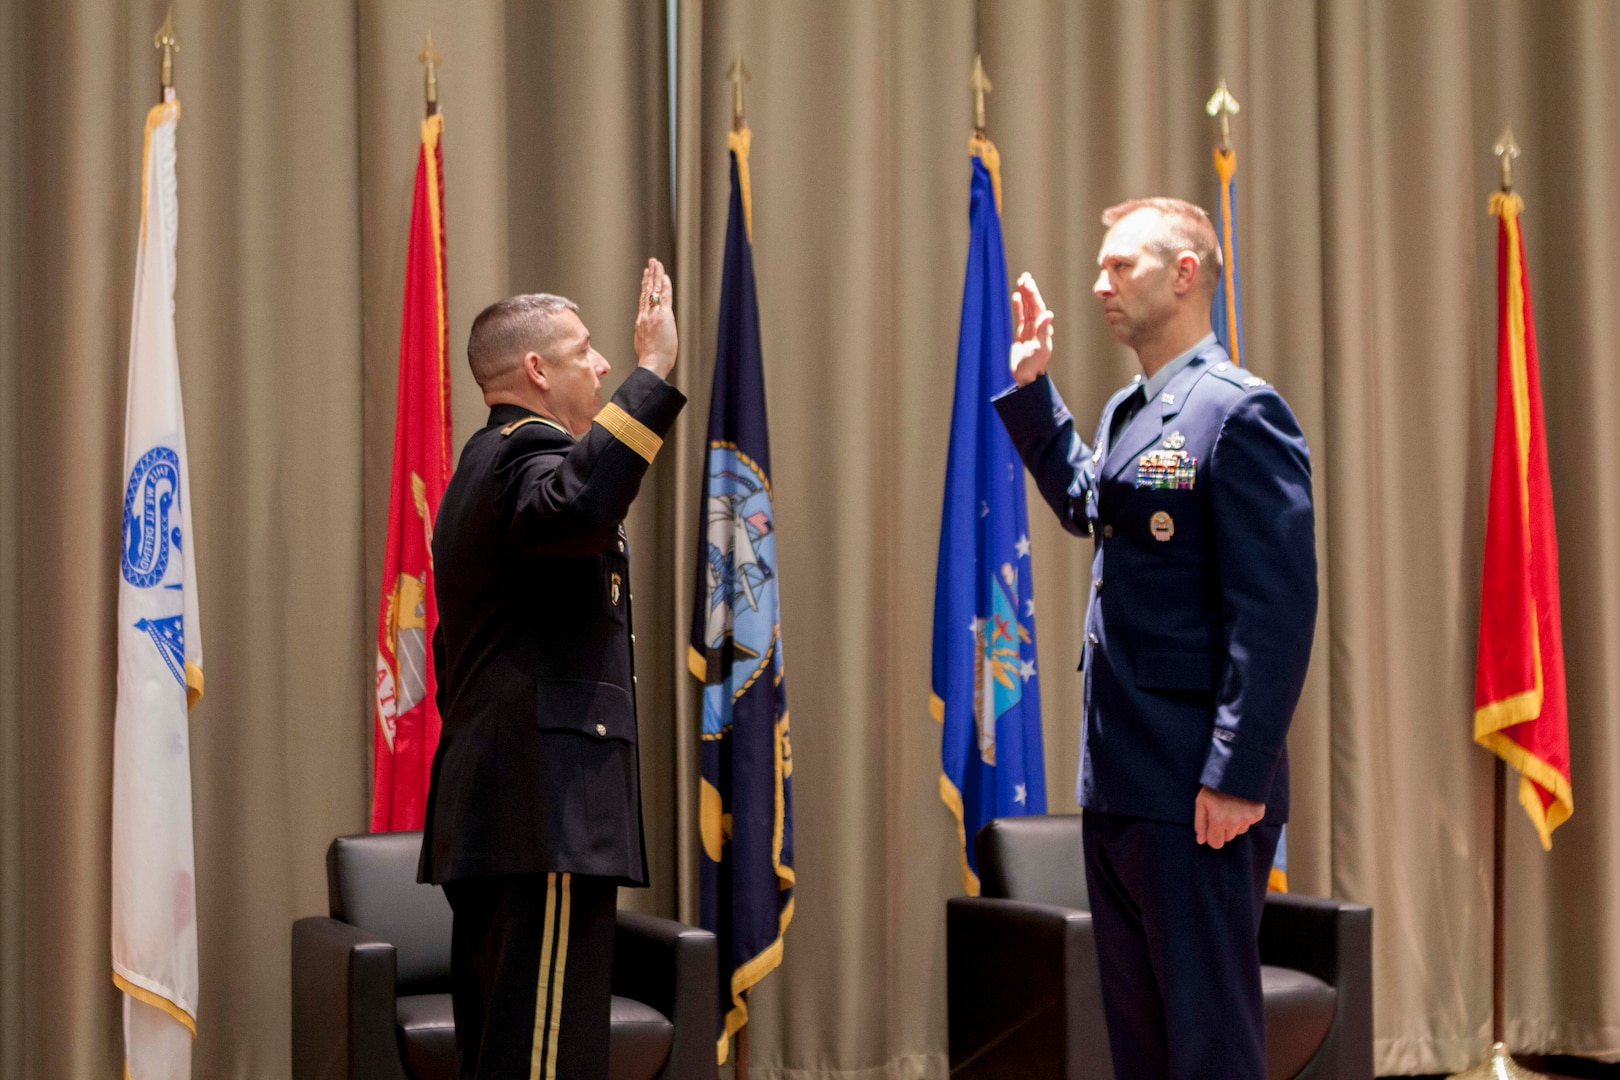 Air Force Lt Col Mike Davis recites the oath of office to DLA Distribution commanding general Army Brig. Gen. John Laskodi as his last action before assuming the rank of Colonel.